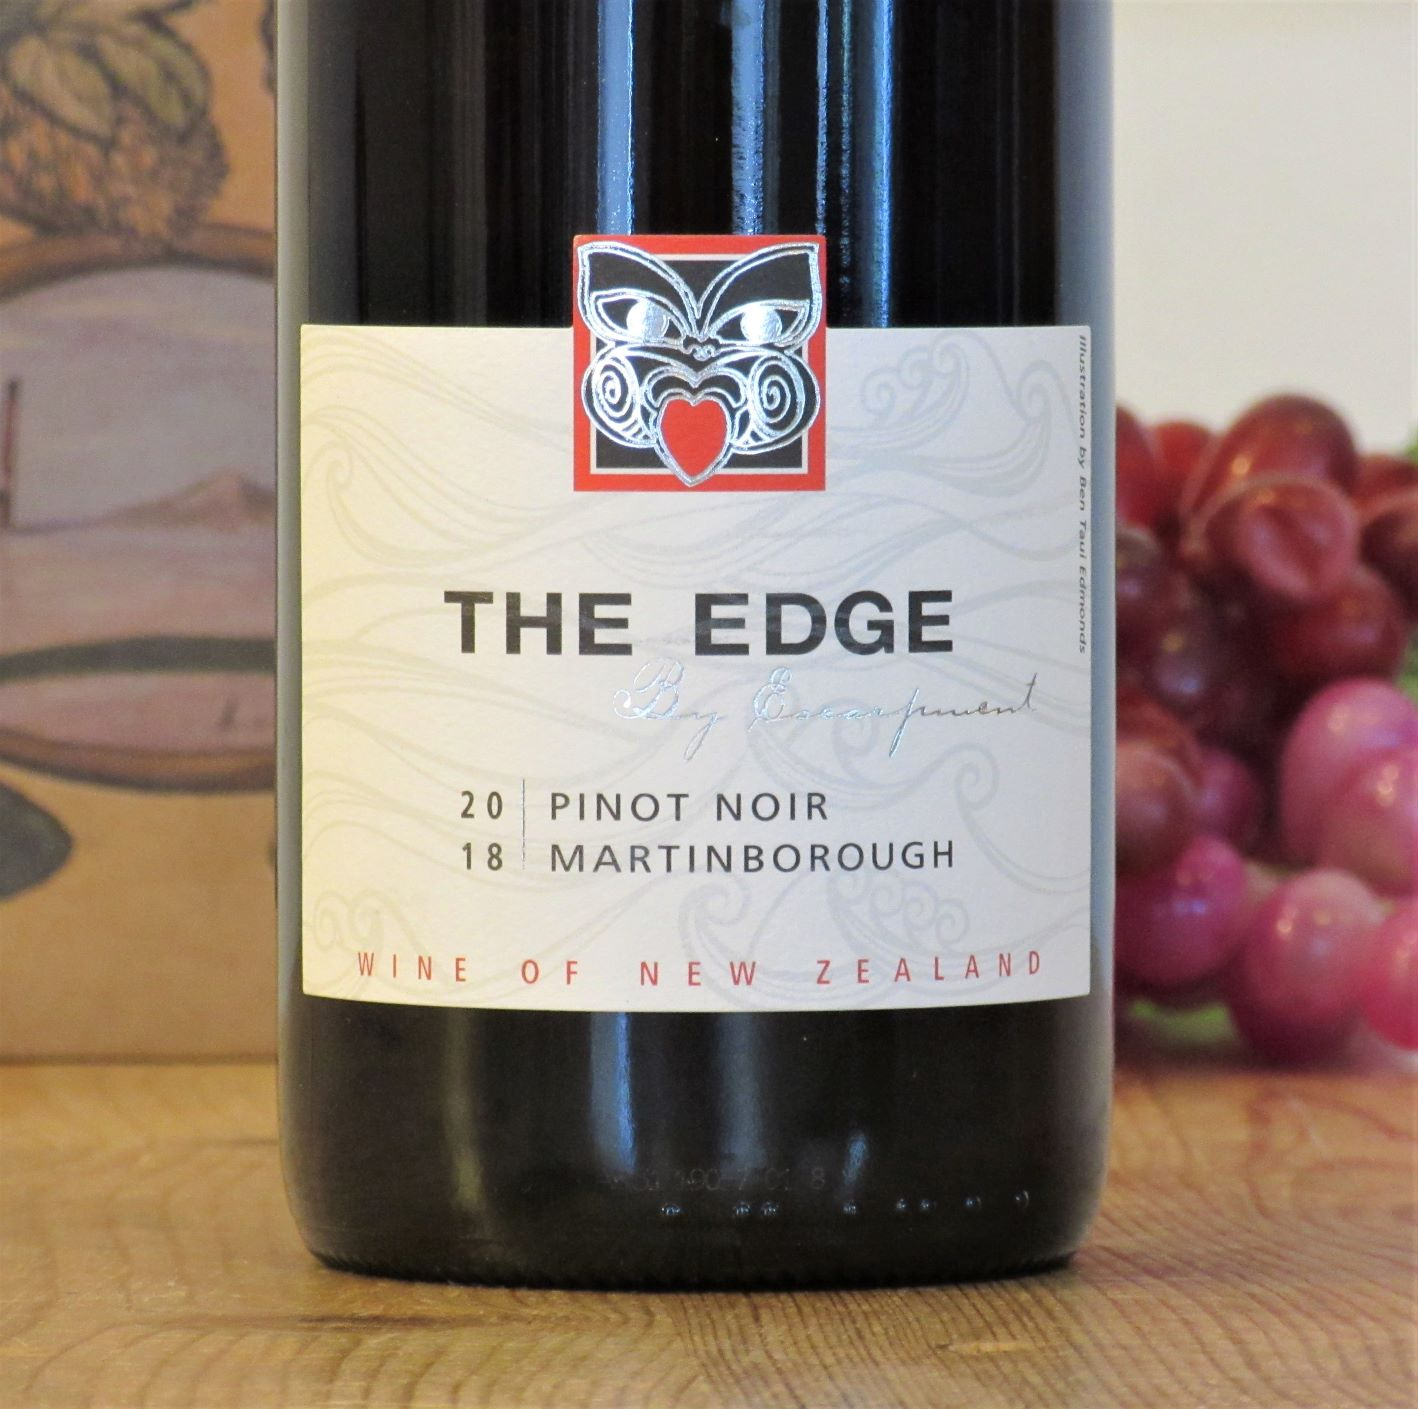 The Edge Pinot Noir